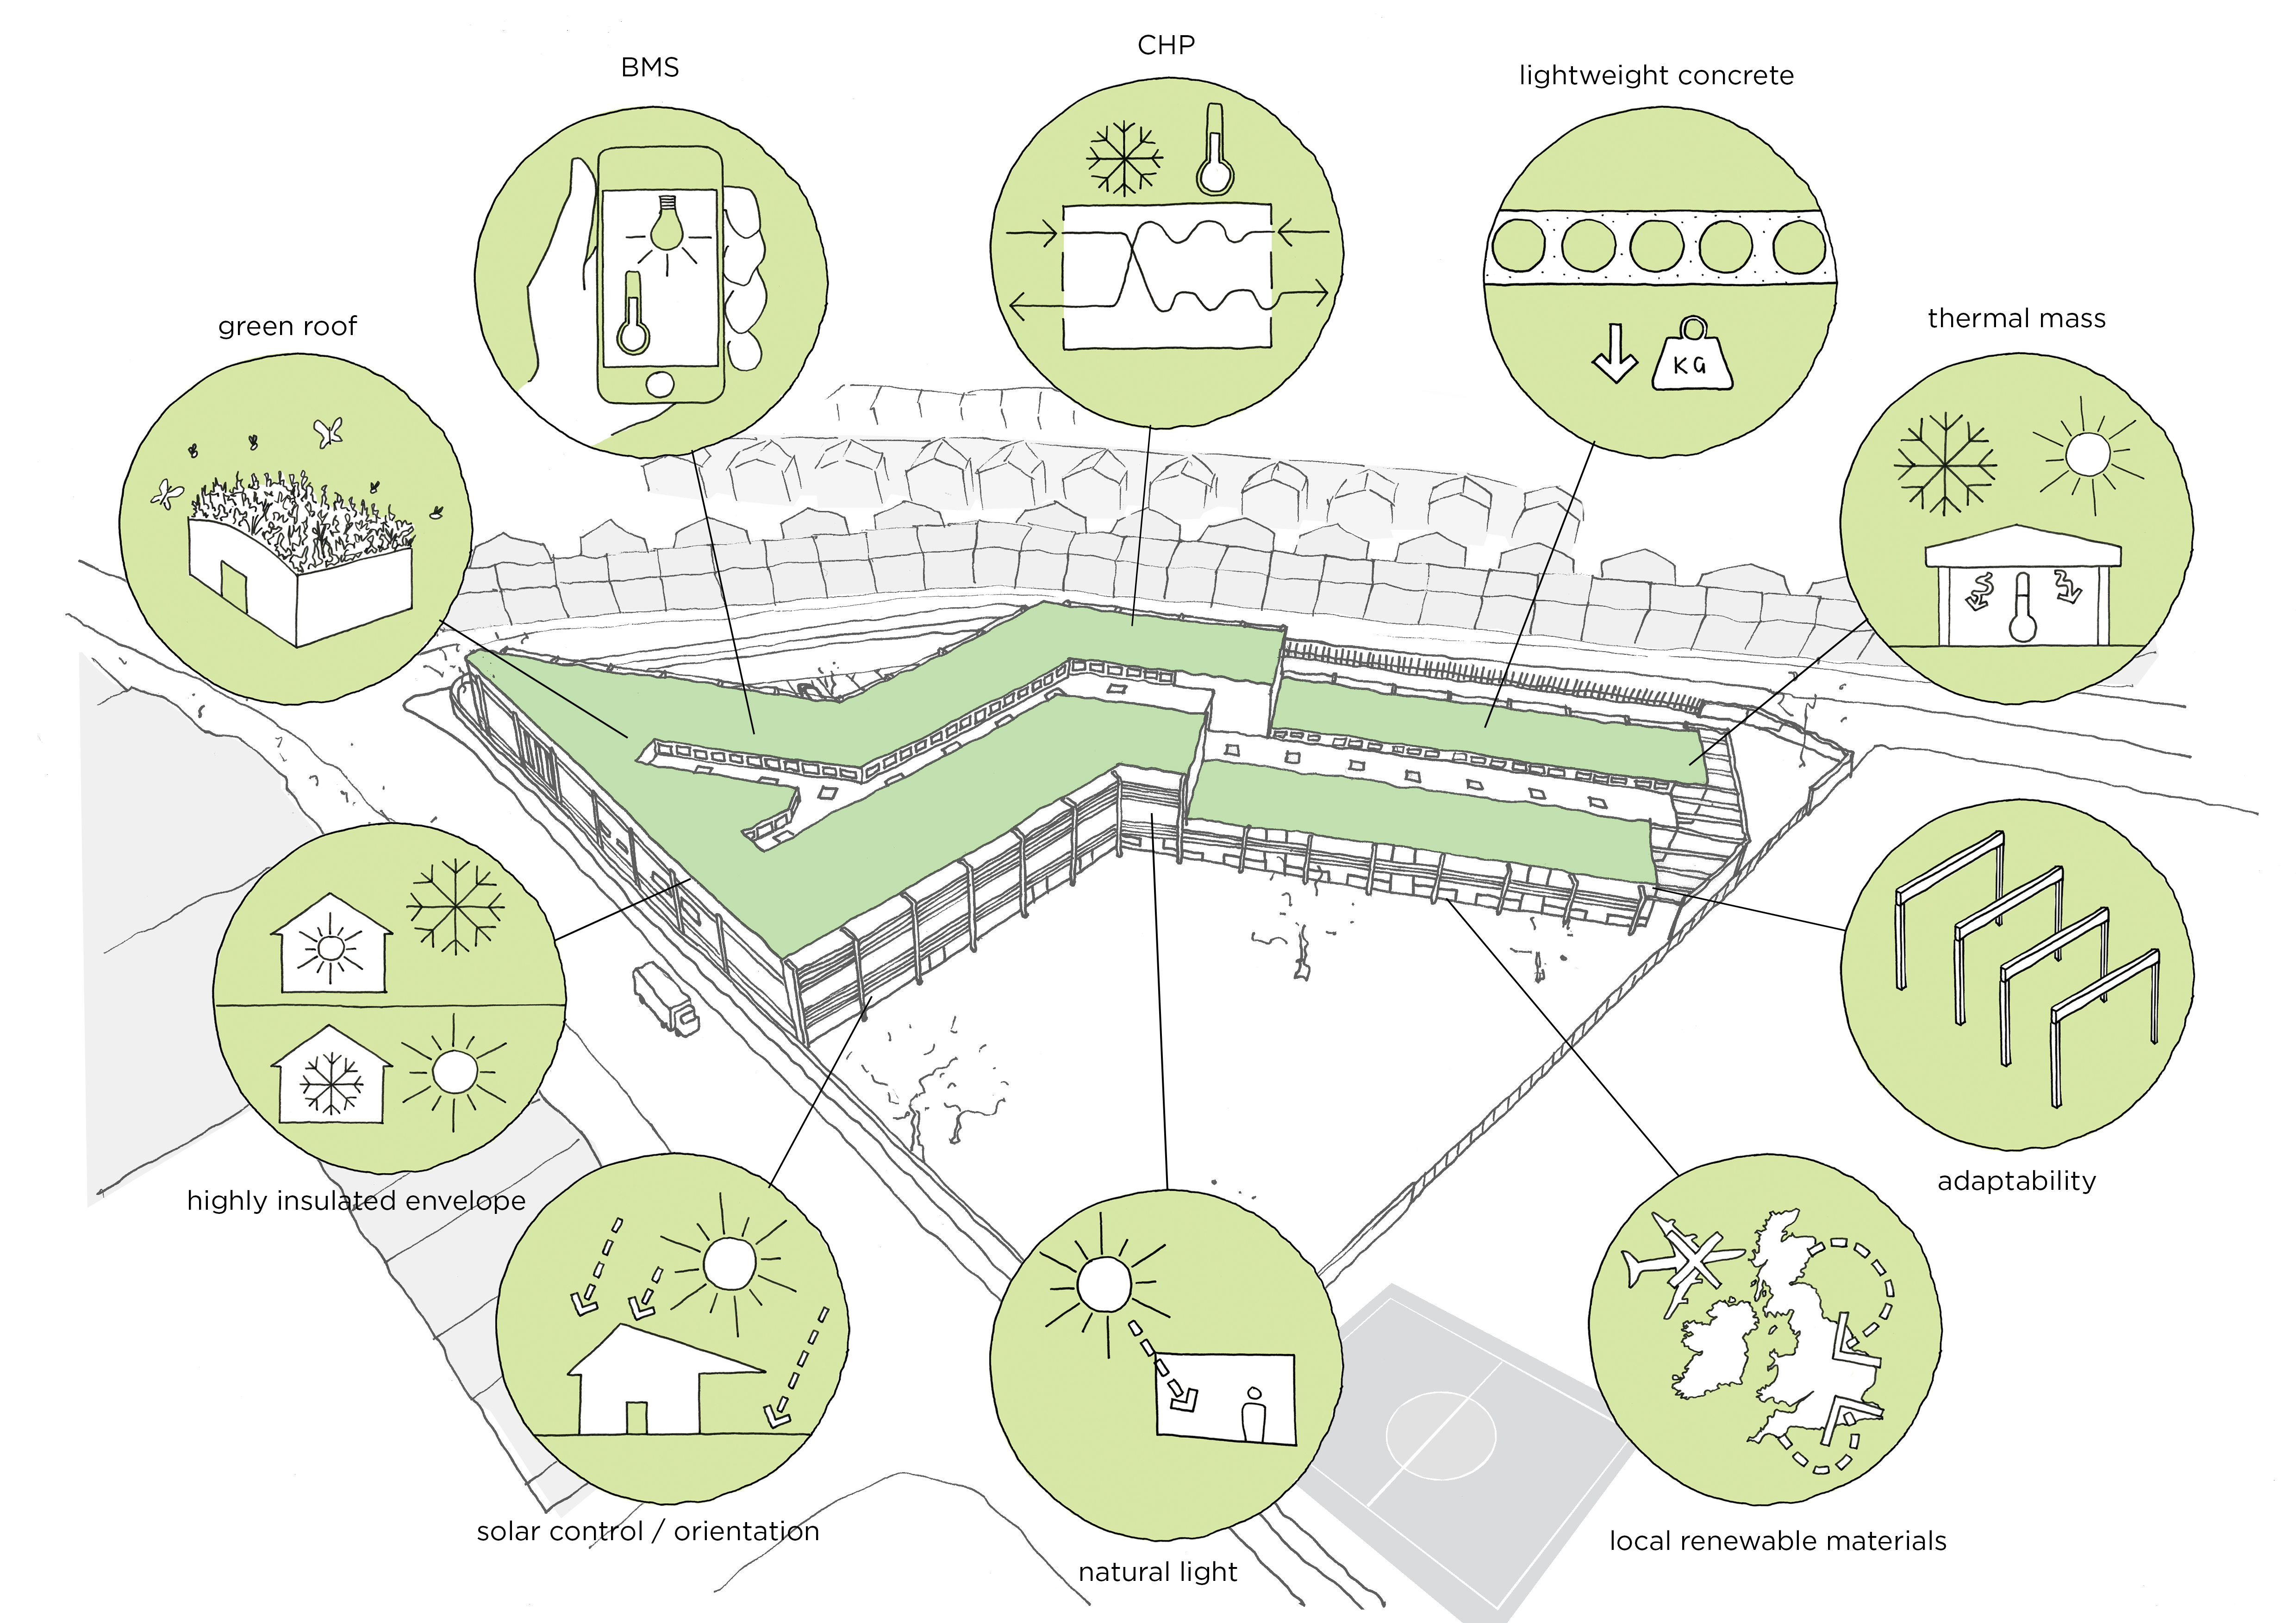 sustainable features diagrams - Michael Tippett School by Marks Barfield Architects